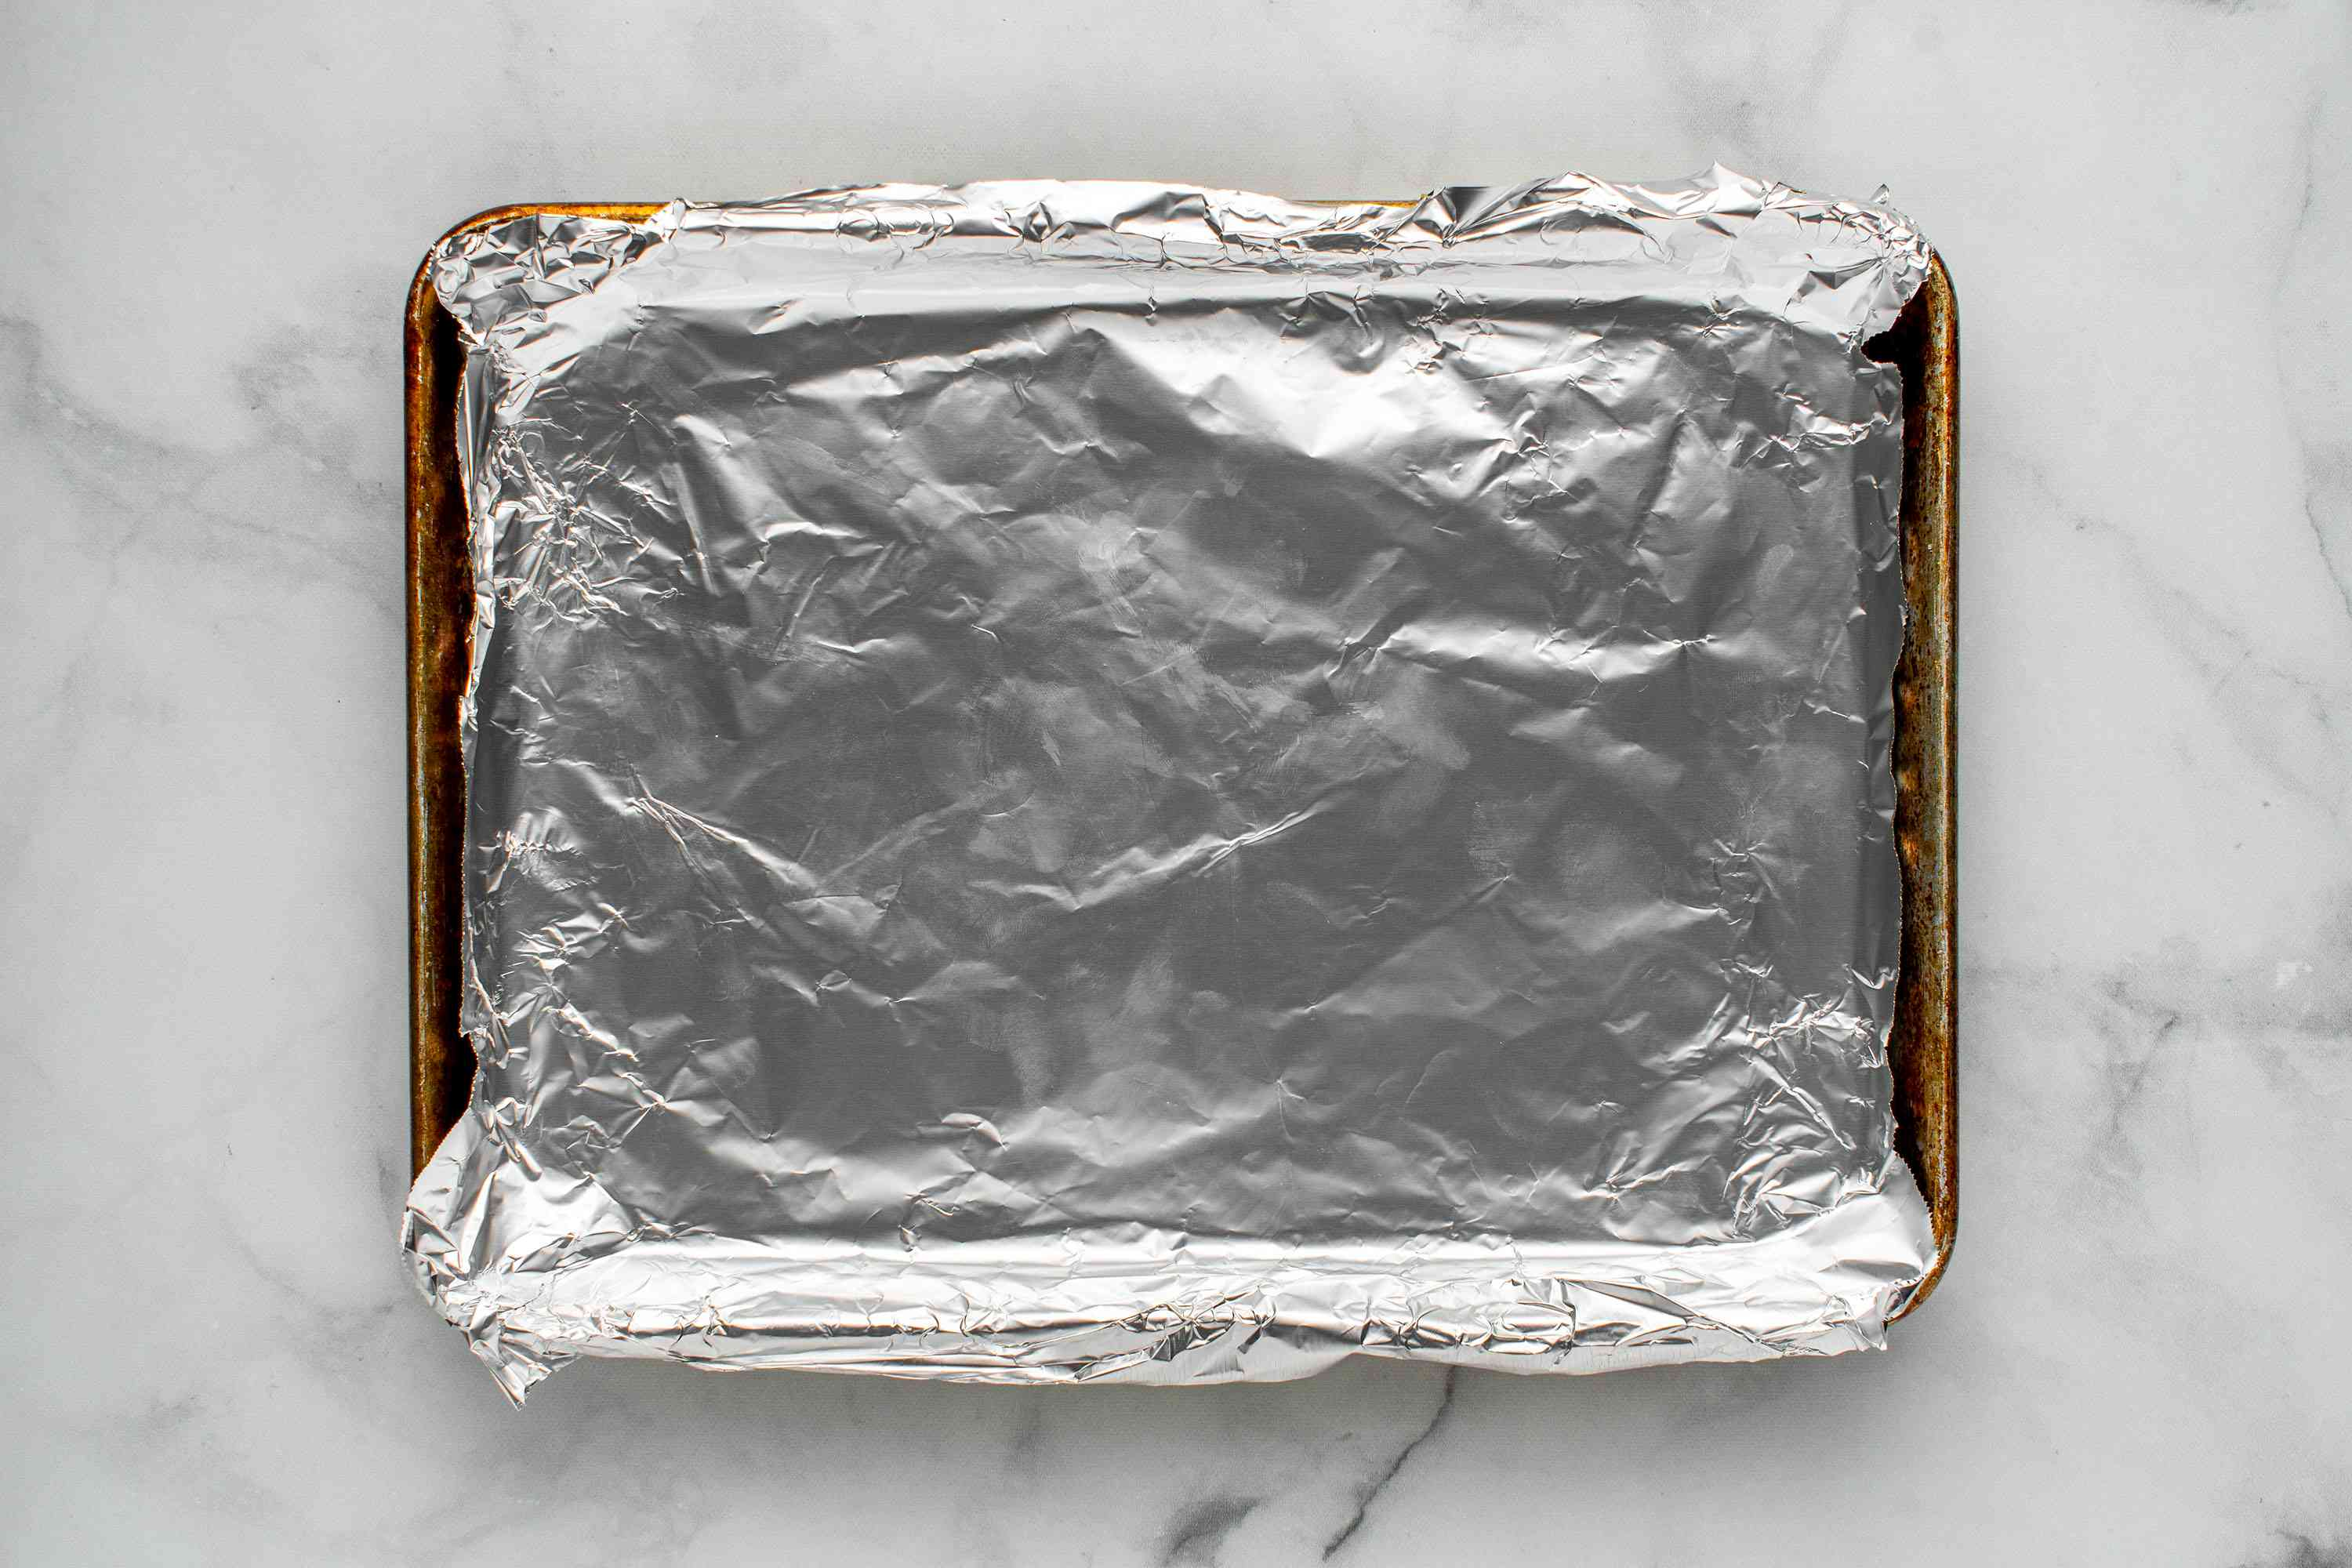 Cover a baking sheet with aluminum foil